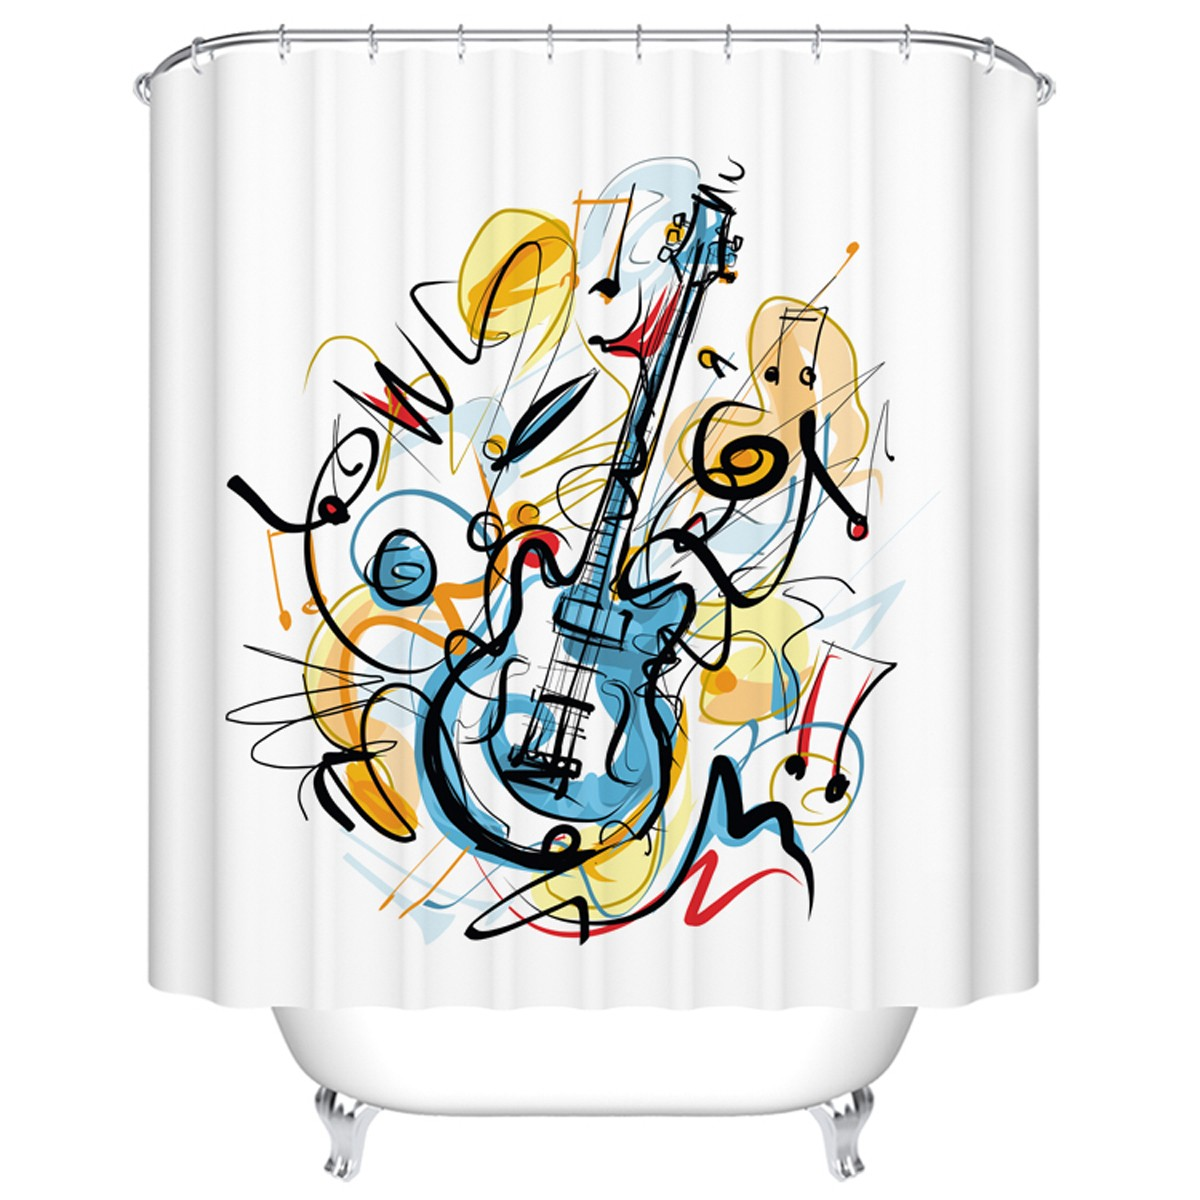 "Fashionable Bathroom Waterproof Shower Curtain, 70"" W x 72"" H (DK-YT027)"